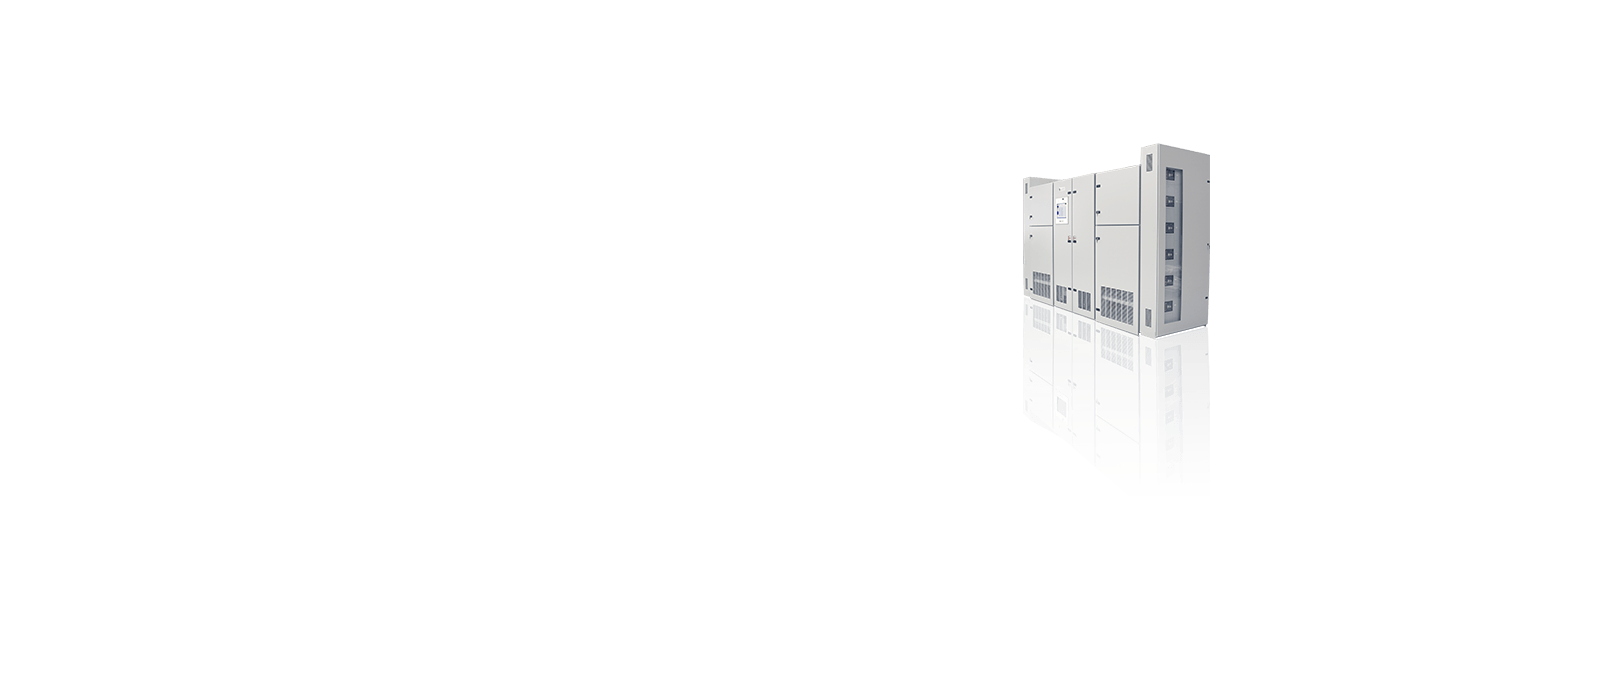 Static Transfer Switch with Power Distribution Unit (PDU), Dual Transformers, and Finger-Safe Distribution